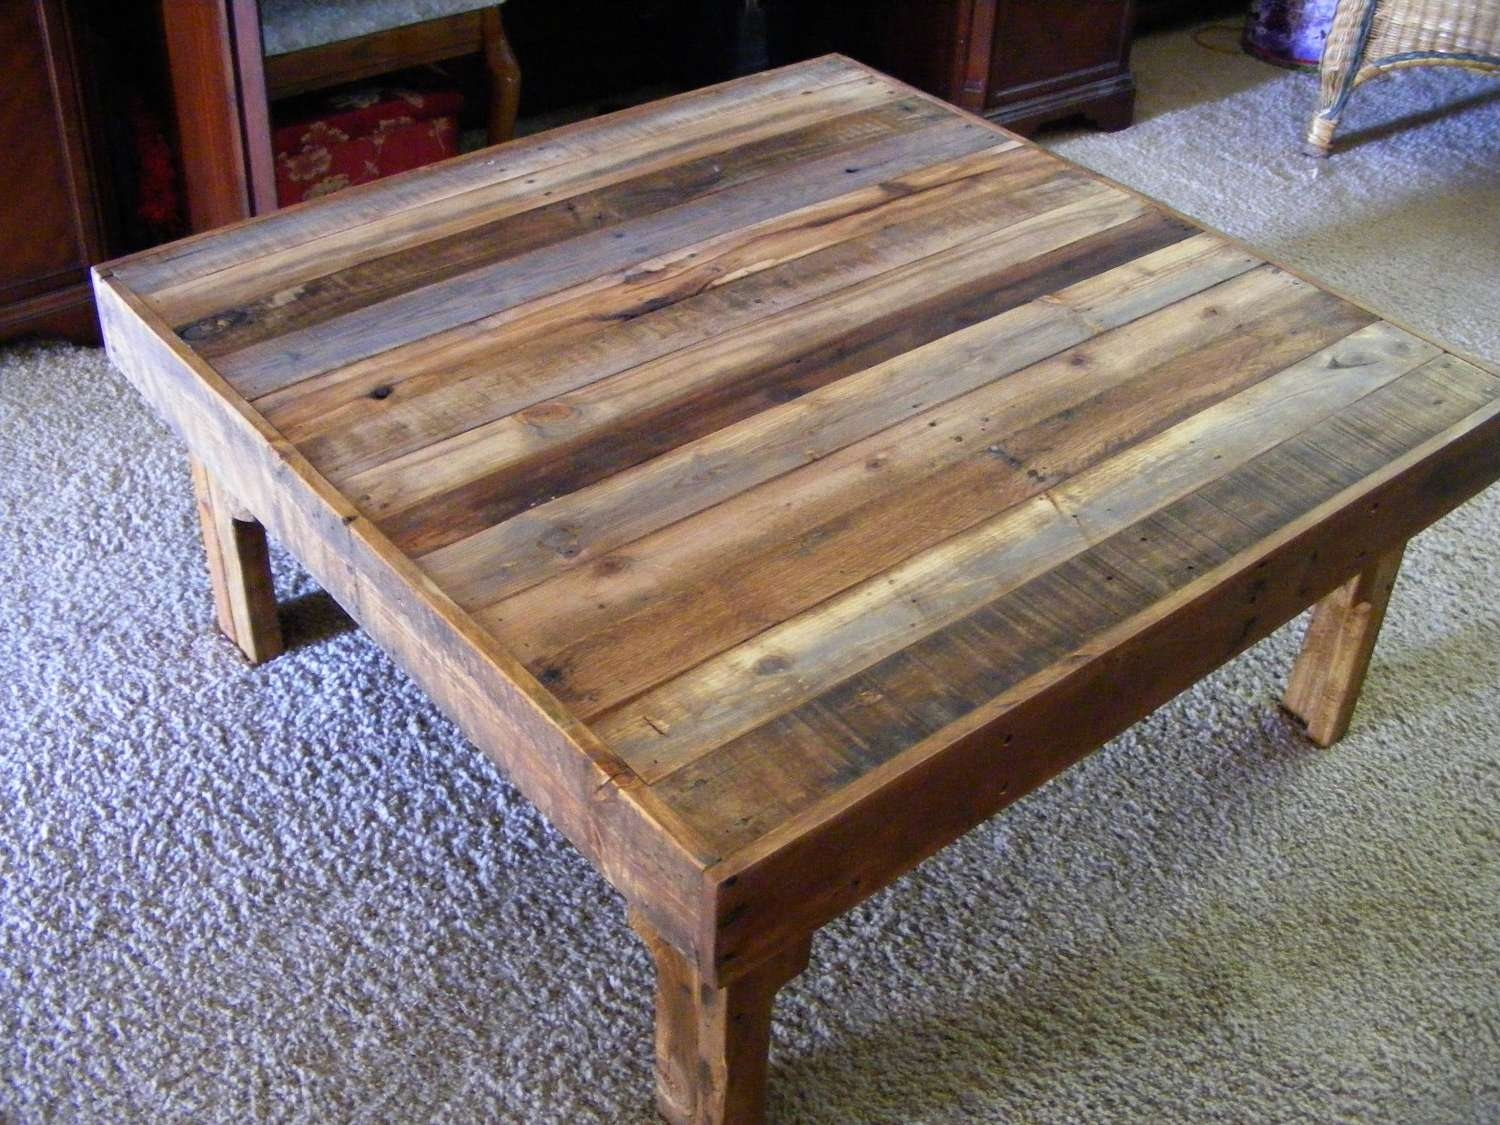 Coffee Tables : Astonishing Pretty Rustic Coffee Tables Wood Table Intended For Current Large Coffee Tables With Storage (View 10 of 20)